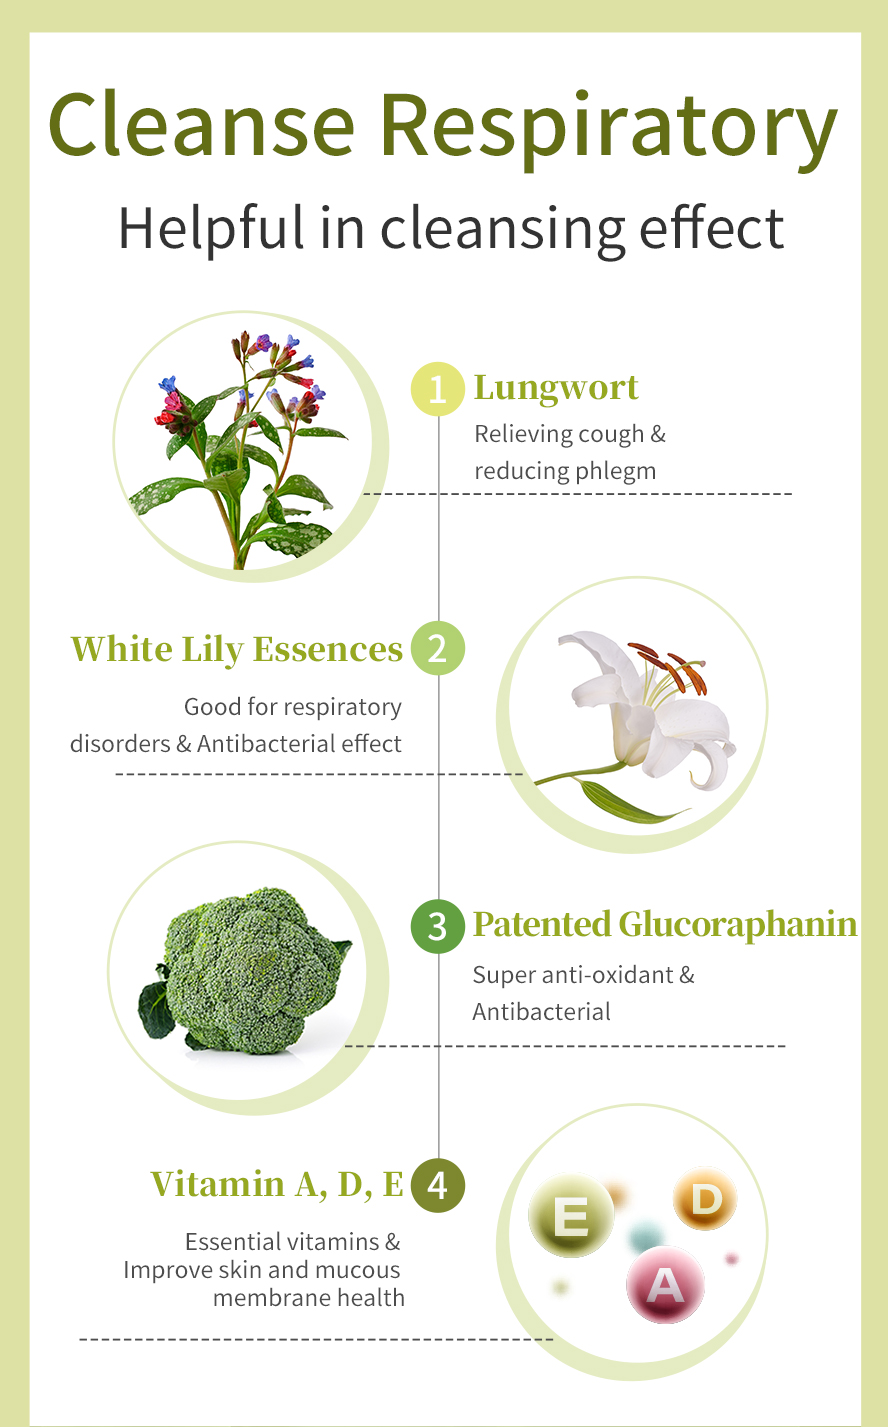 BHK Lungwort uses lungwort, glucoraphanin, lili bulbus and vitamin A, vitamin D and vitamin E. Promotes healthy lung function